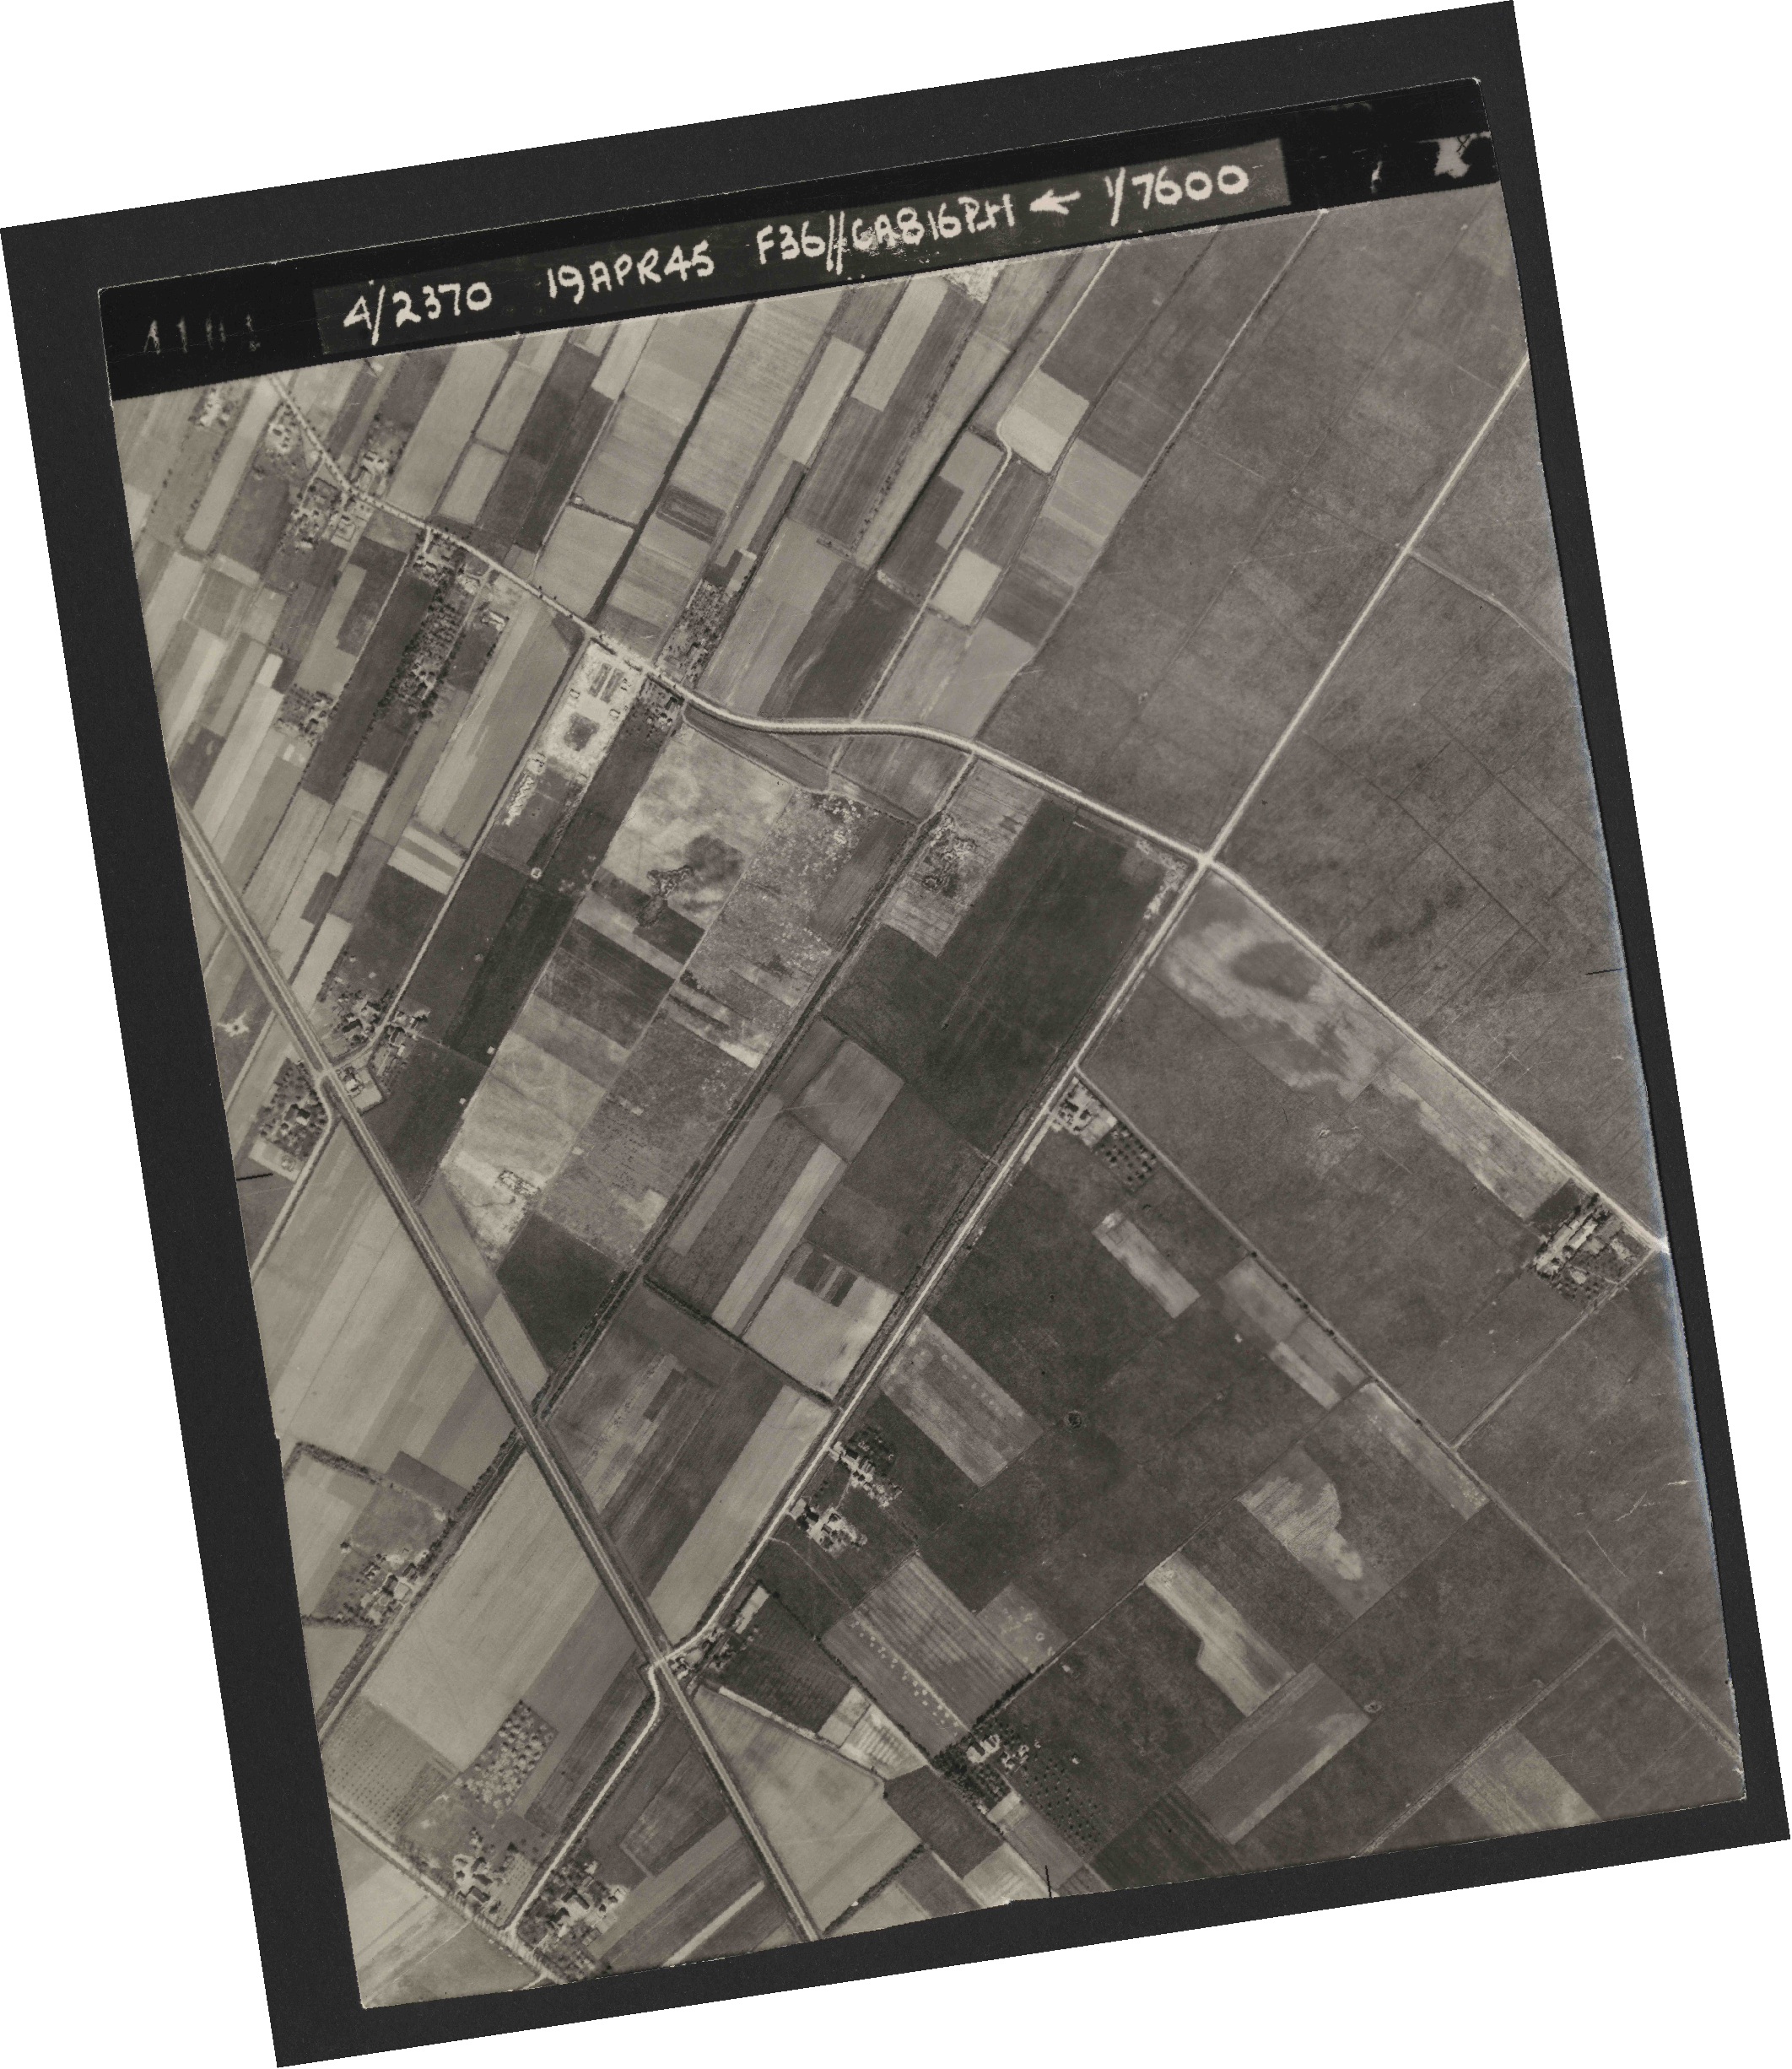 Collection RAF aerial photos 1940-1945 - flight 109, run 01, photo 4104